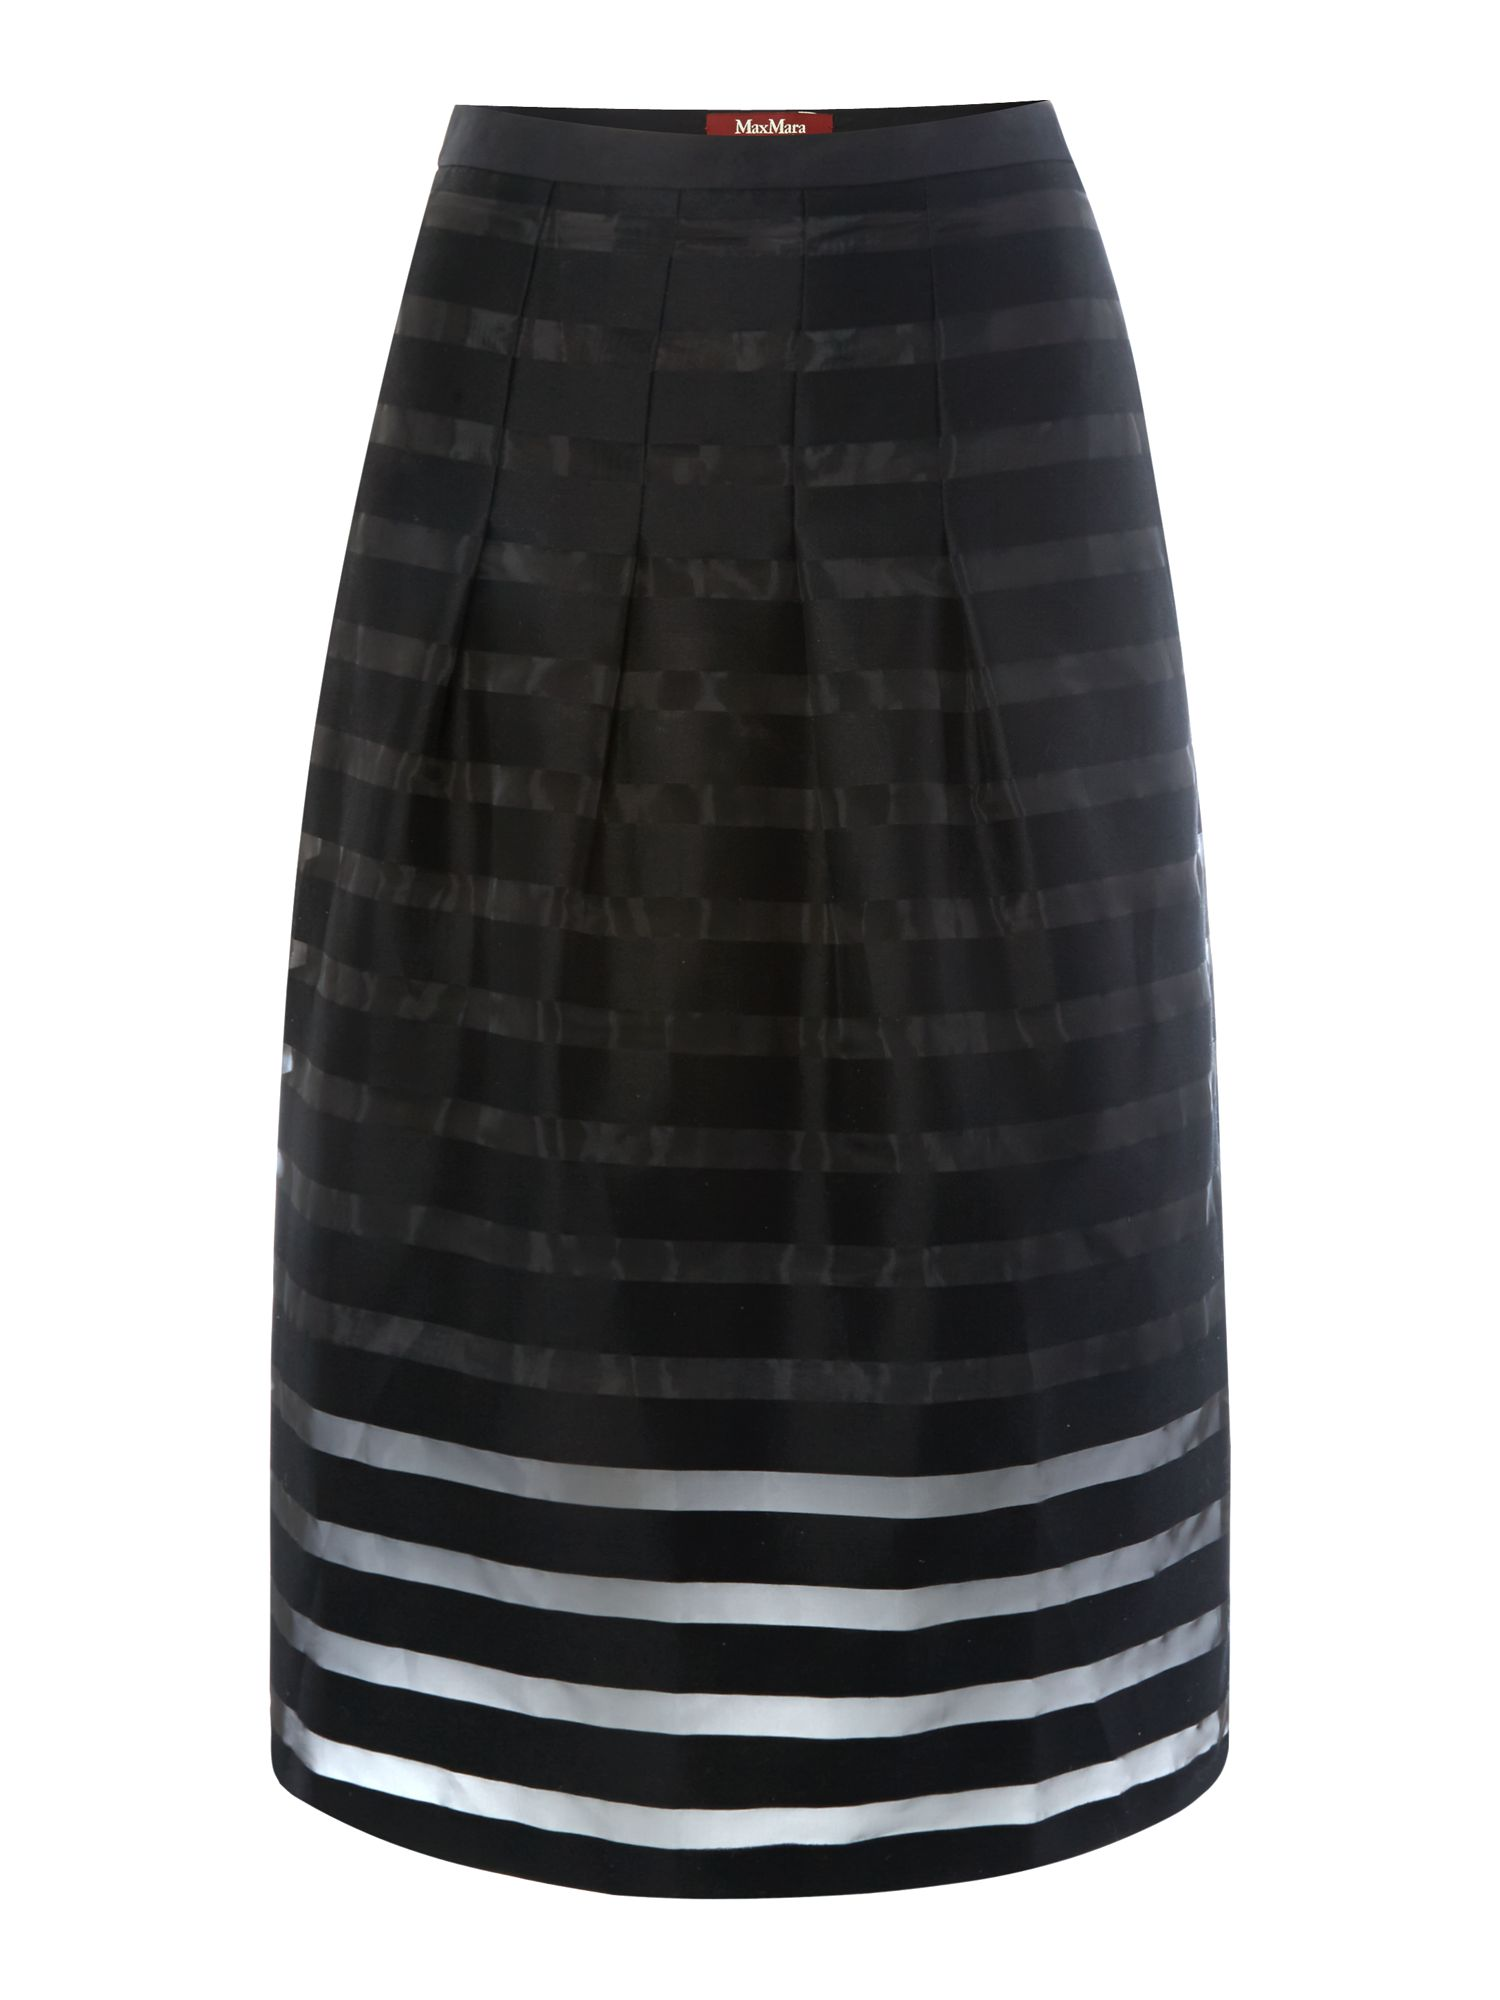 Carioca pleated a line skirt